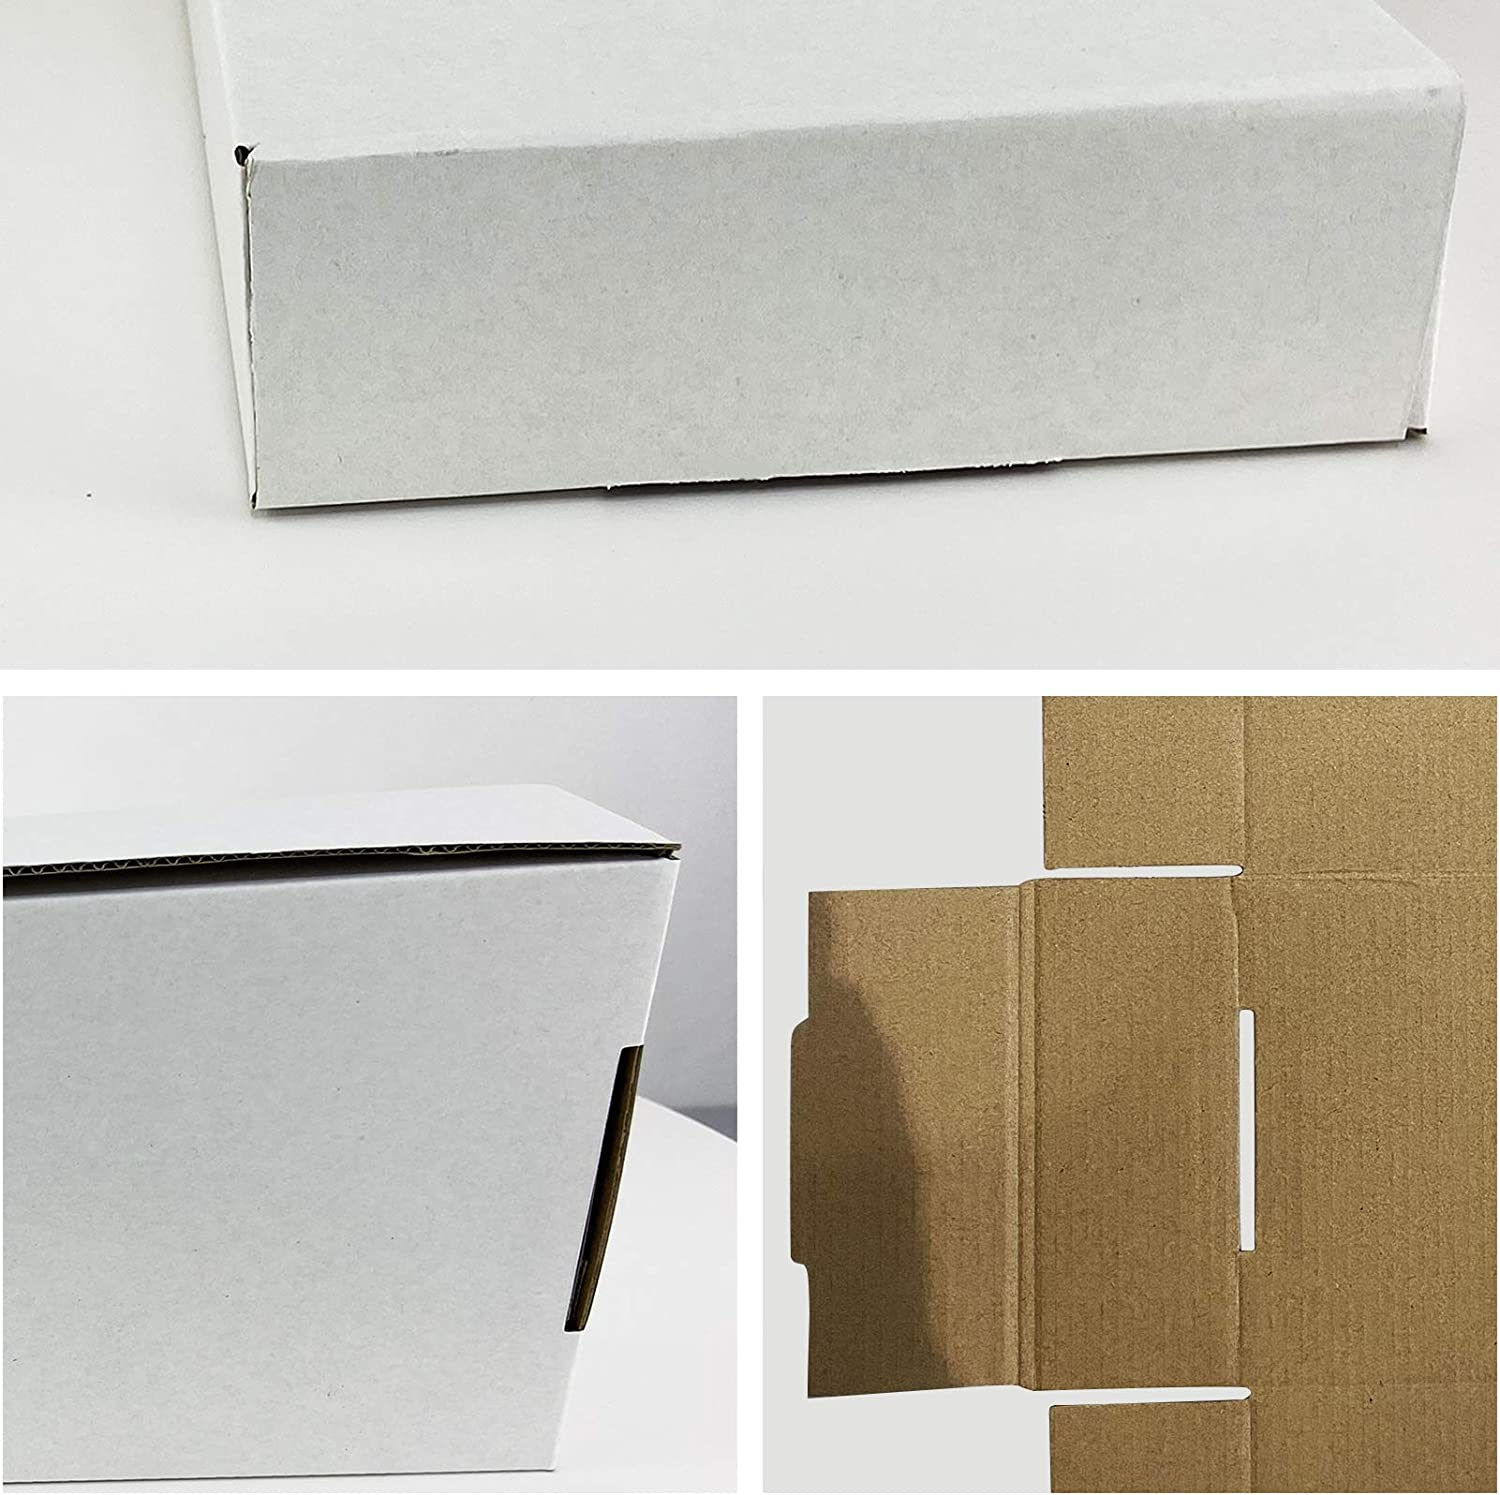 HORLIMER 11x8x2 inches White Corrugated Cardboard Box Literature Mailer Pack of 25